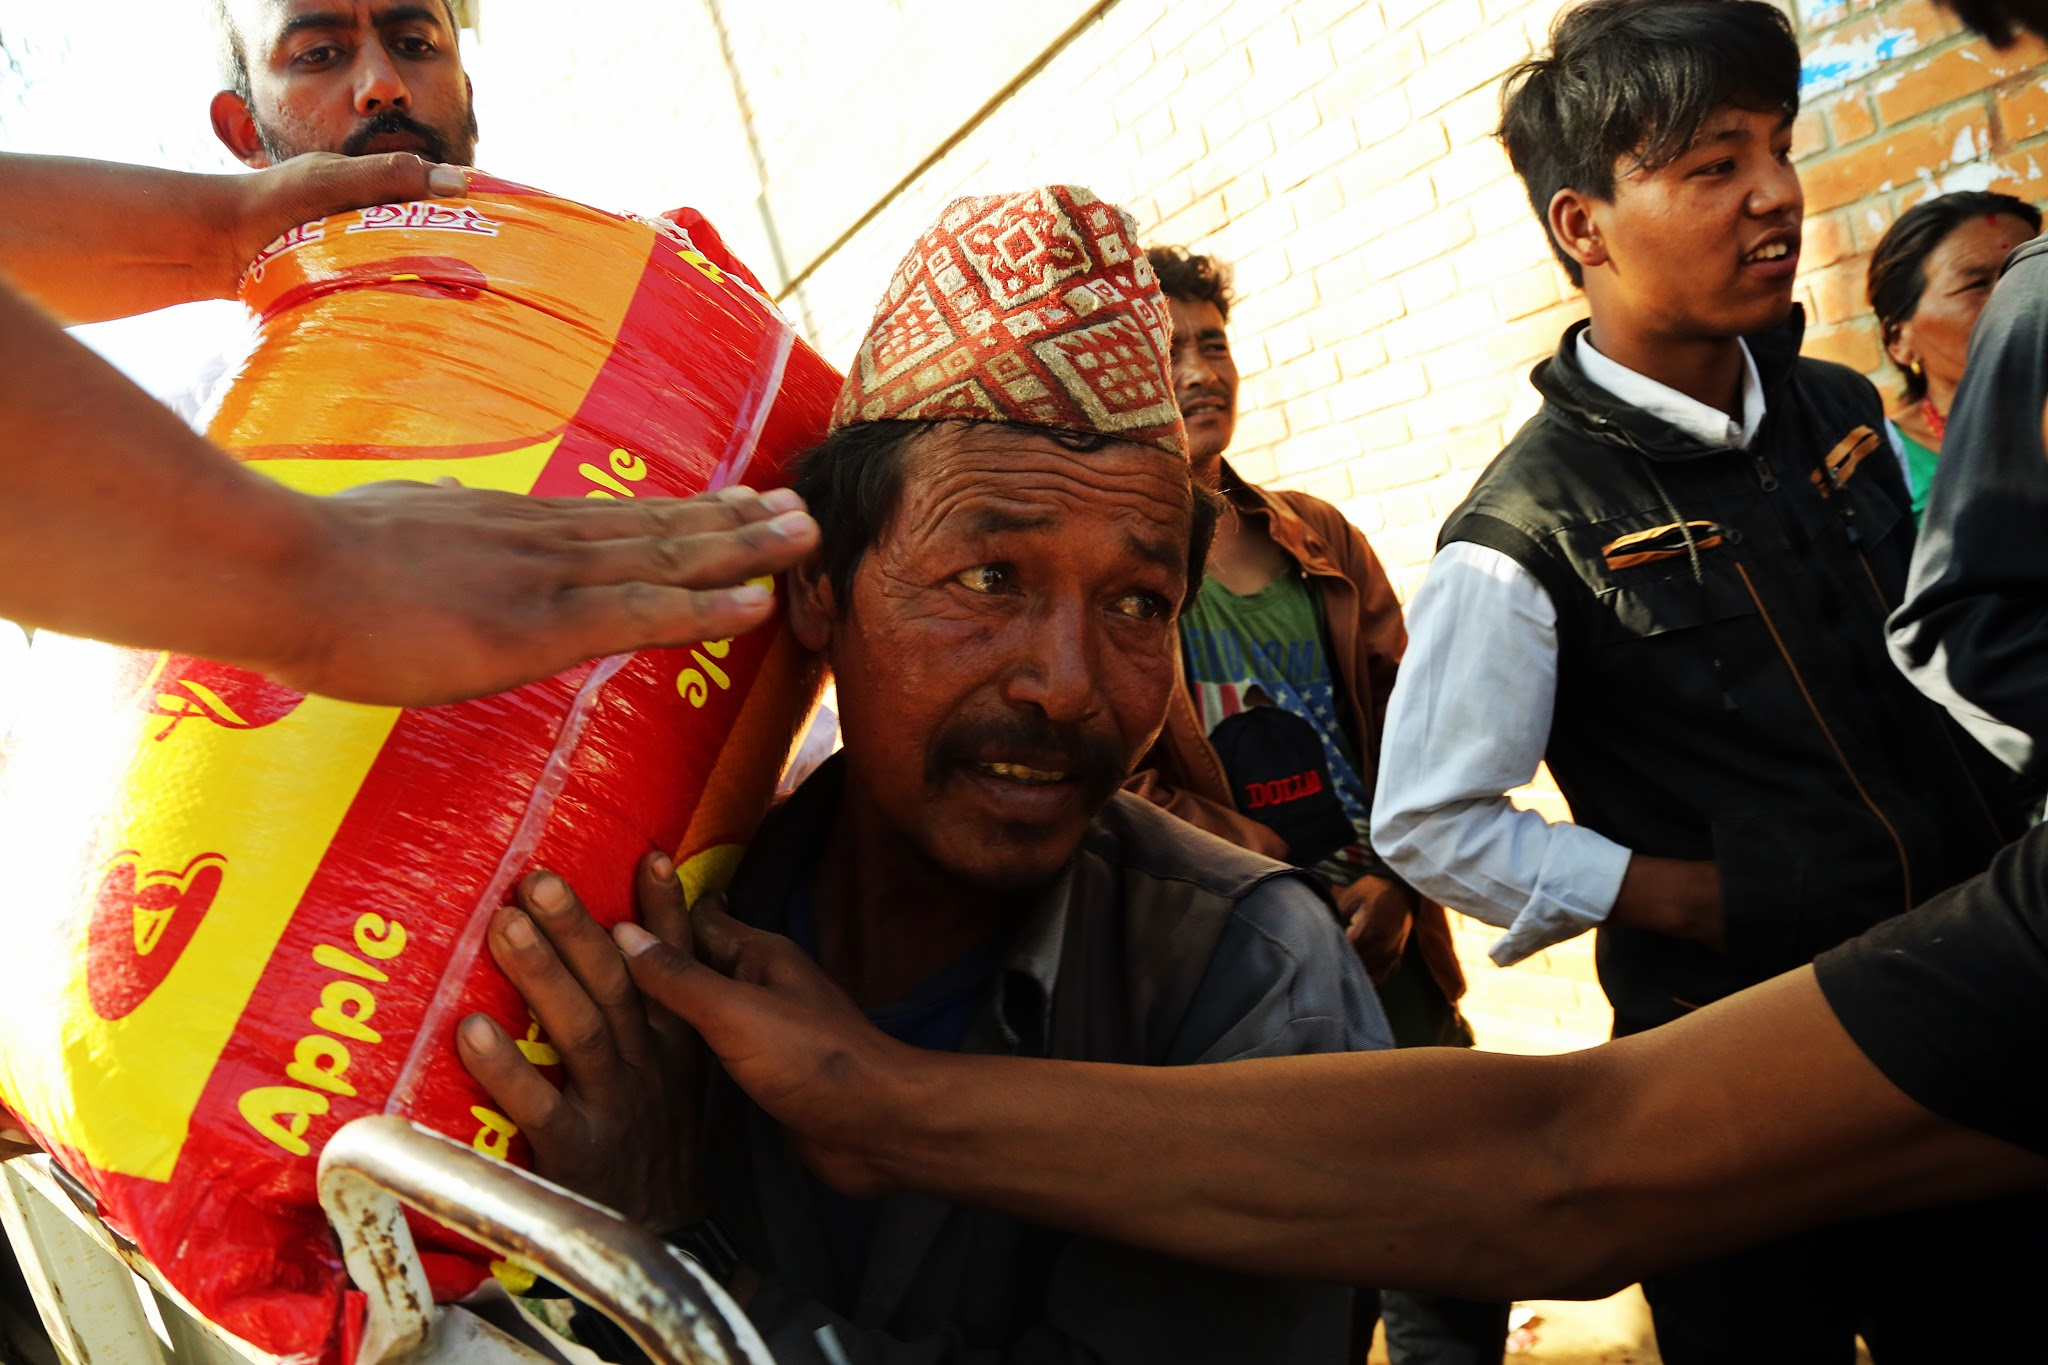 NEPAL: Missionaries Distribute Aid, Begin Providing Materials for Shelter in Preparation for Monsoon Season